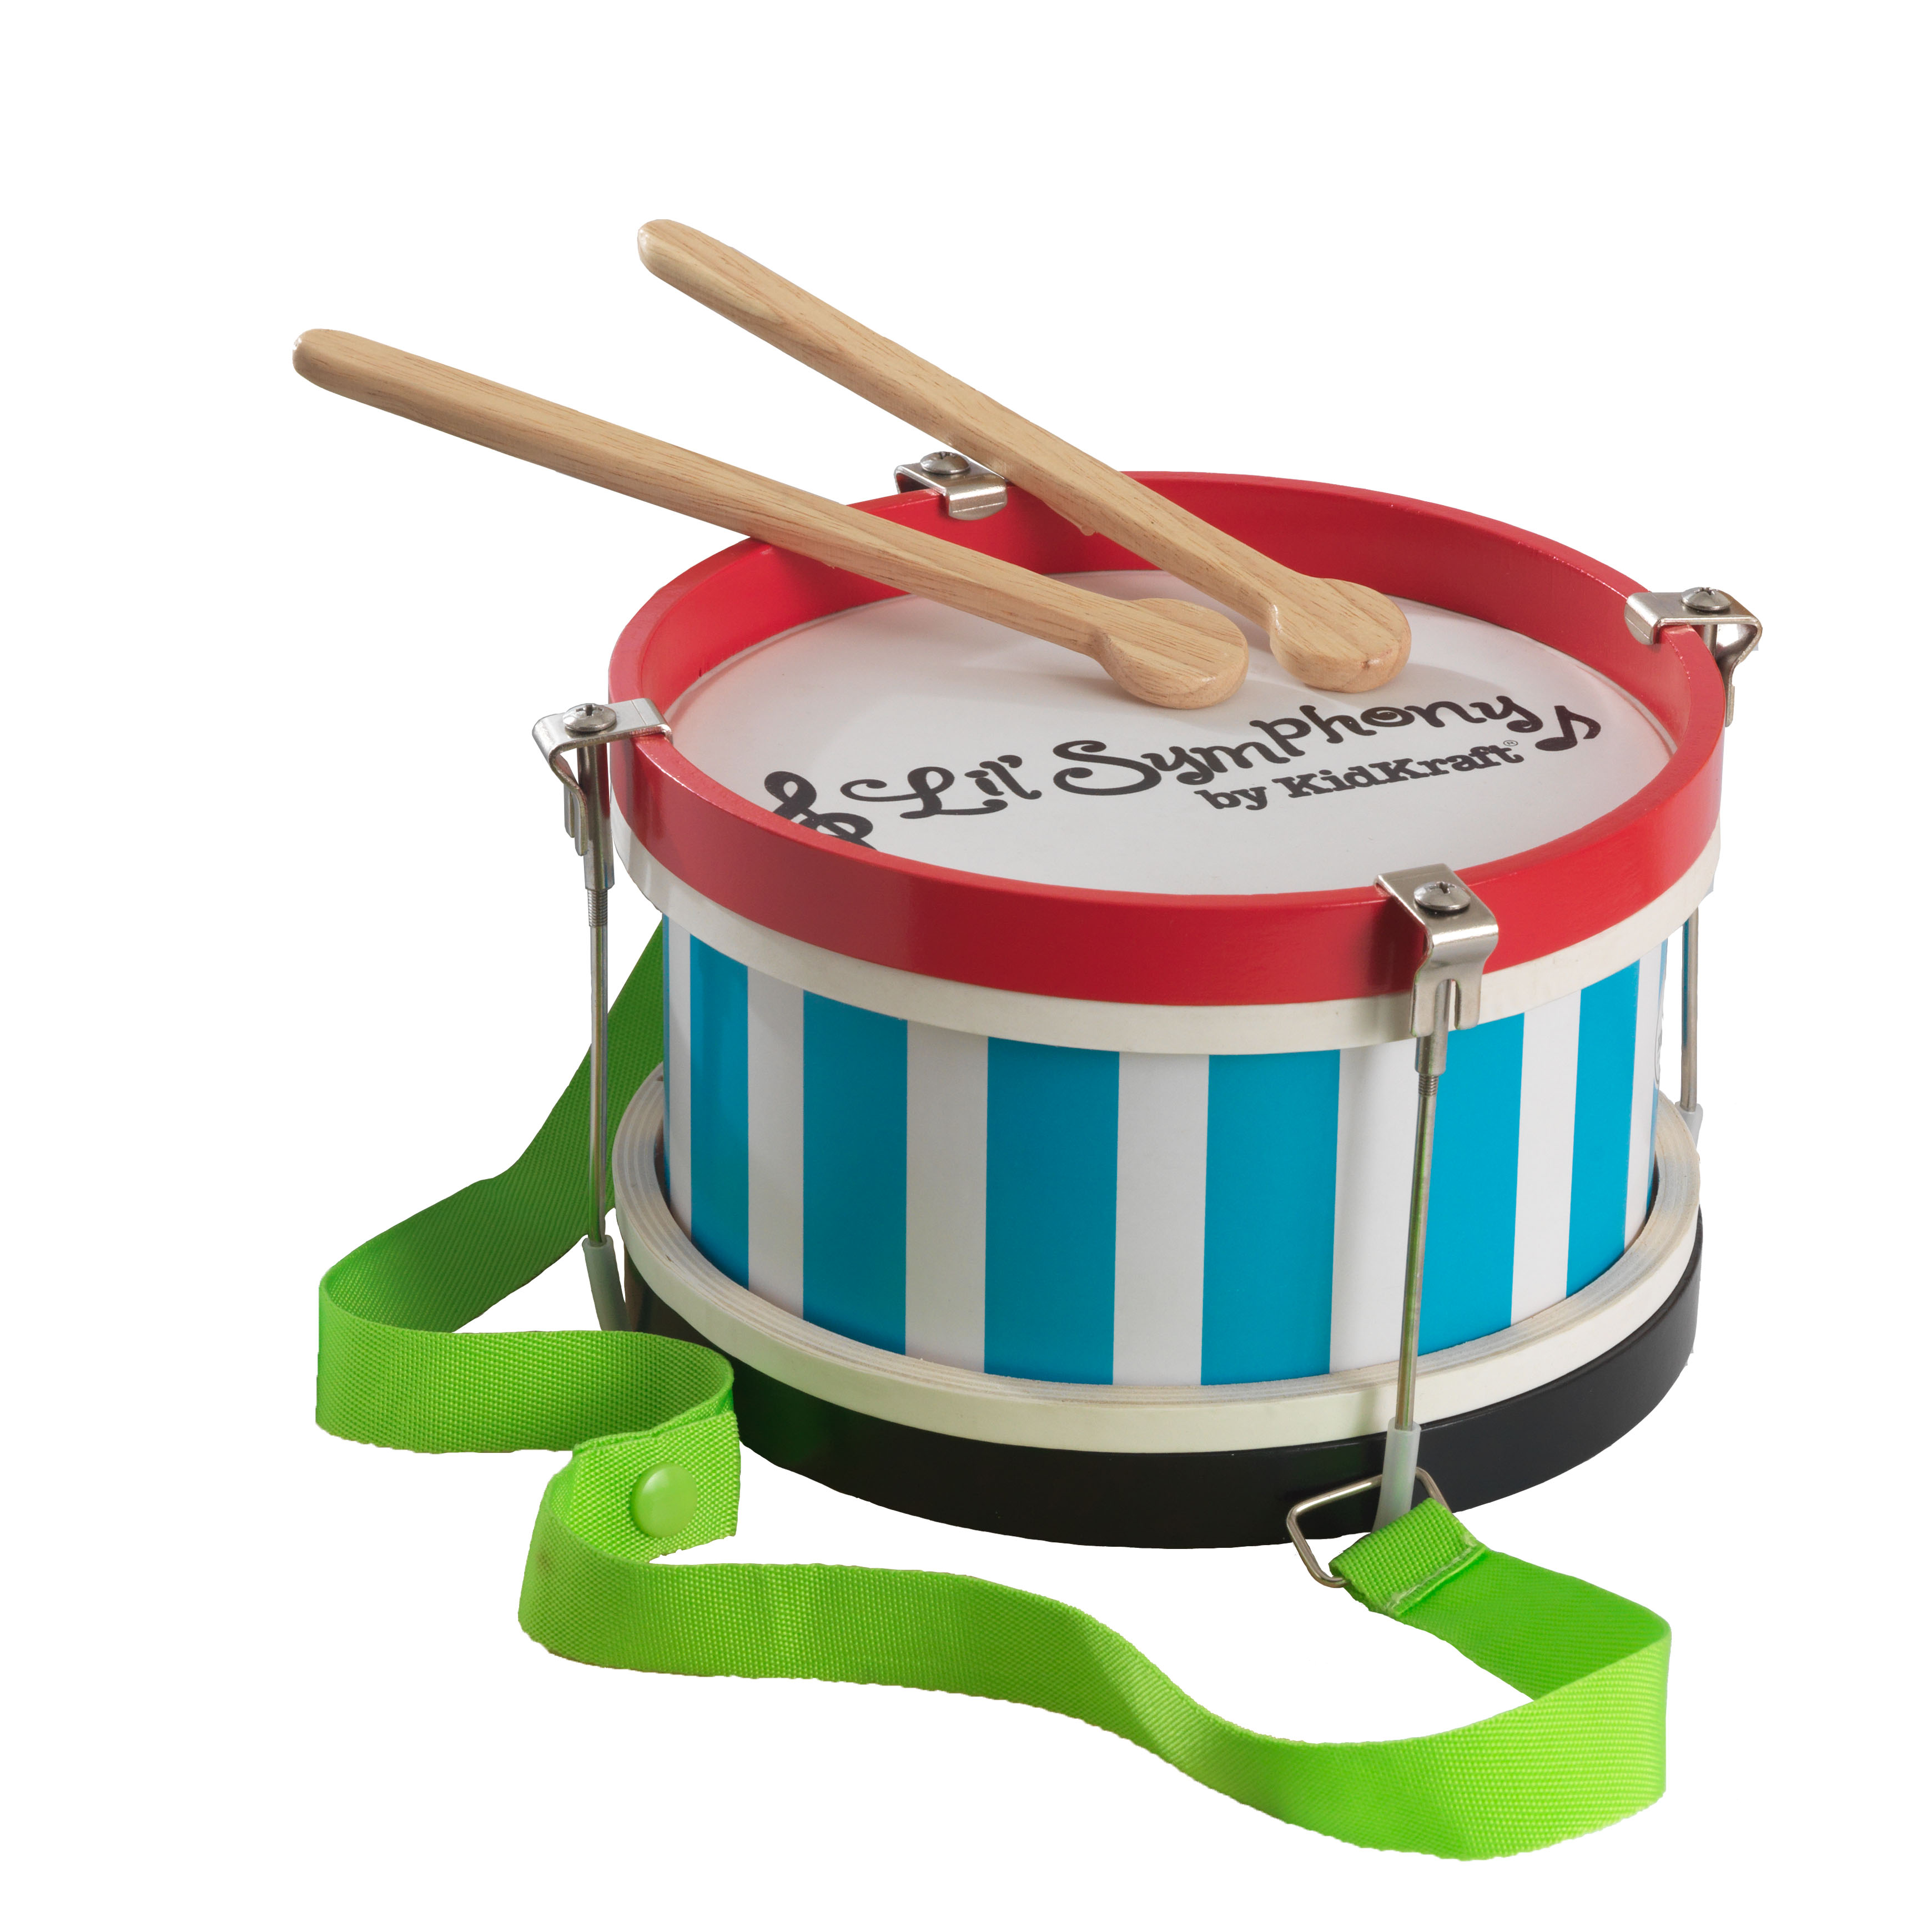 KidKraft Lil' Symphony Wooden Drum and Drumsticks Children's Musical Instrument Toy with Strap